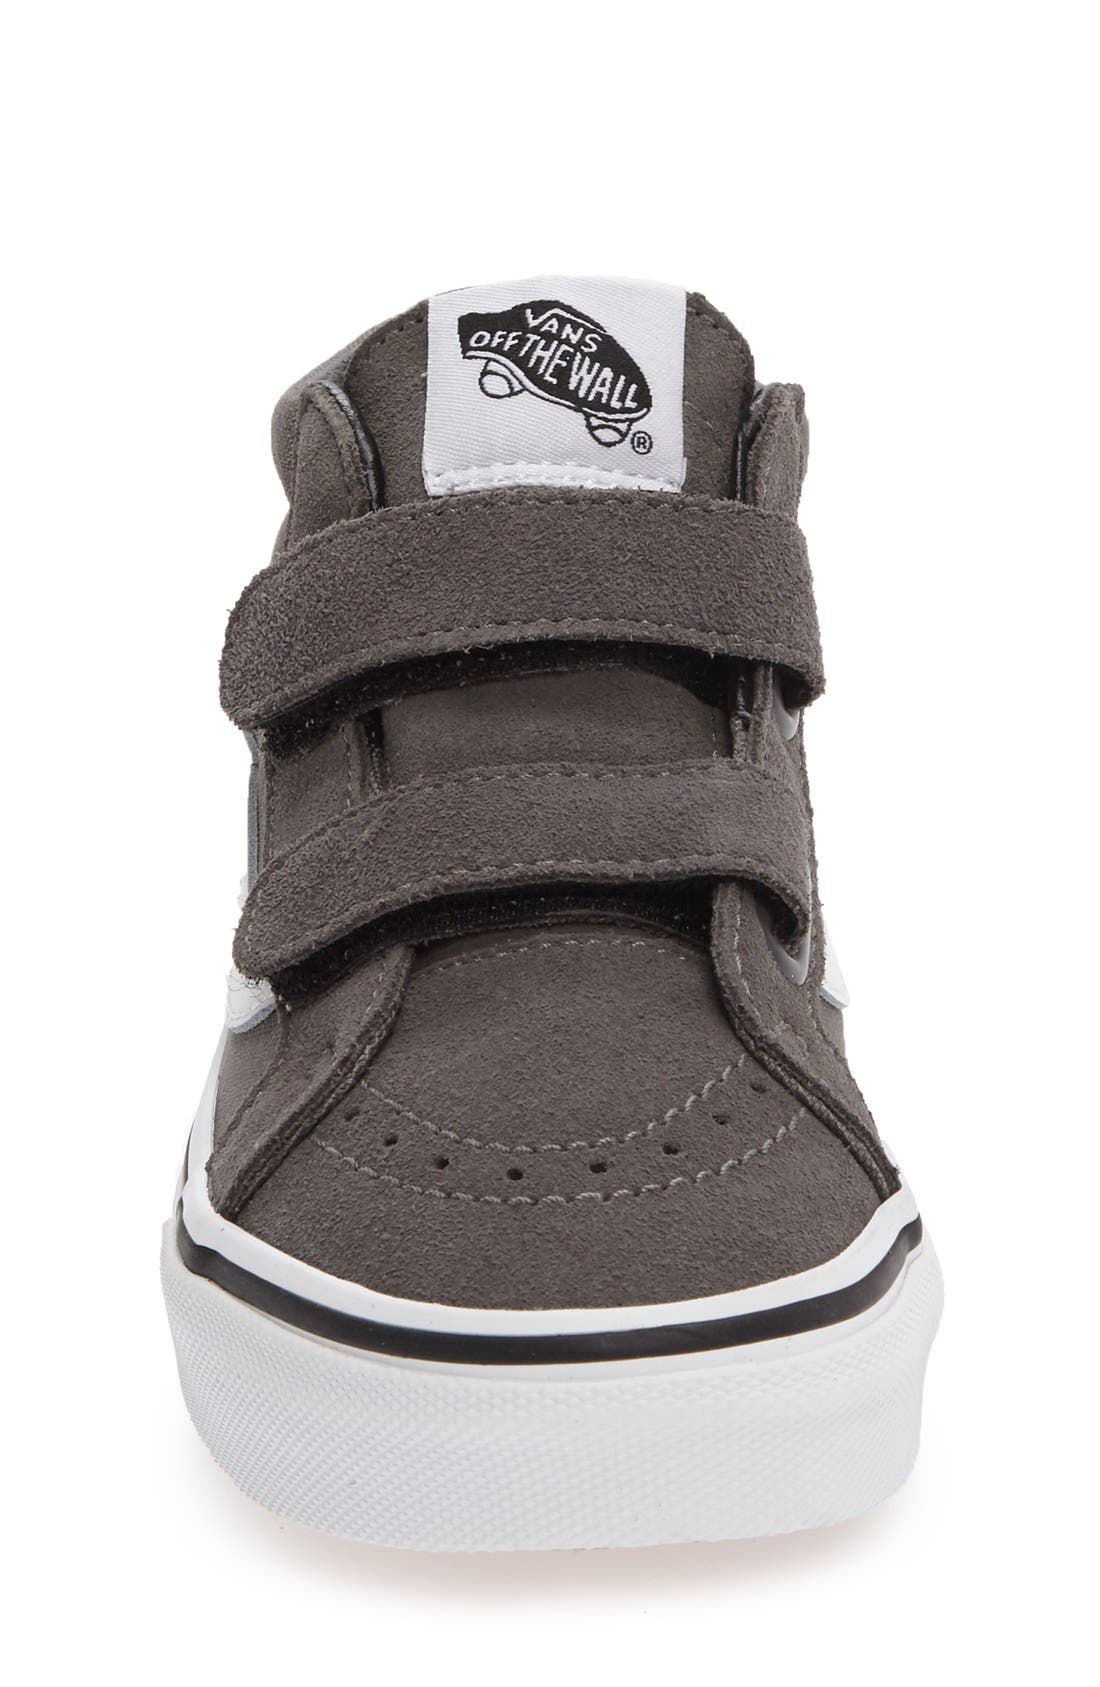 SK8 Mid-Top Reissue Sneaker,                             Alternate thumbnail 3, color,                             GREY FABRIC